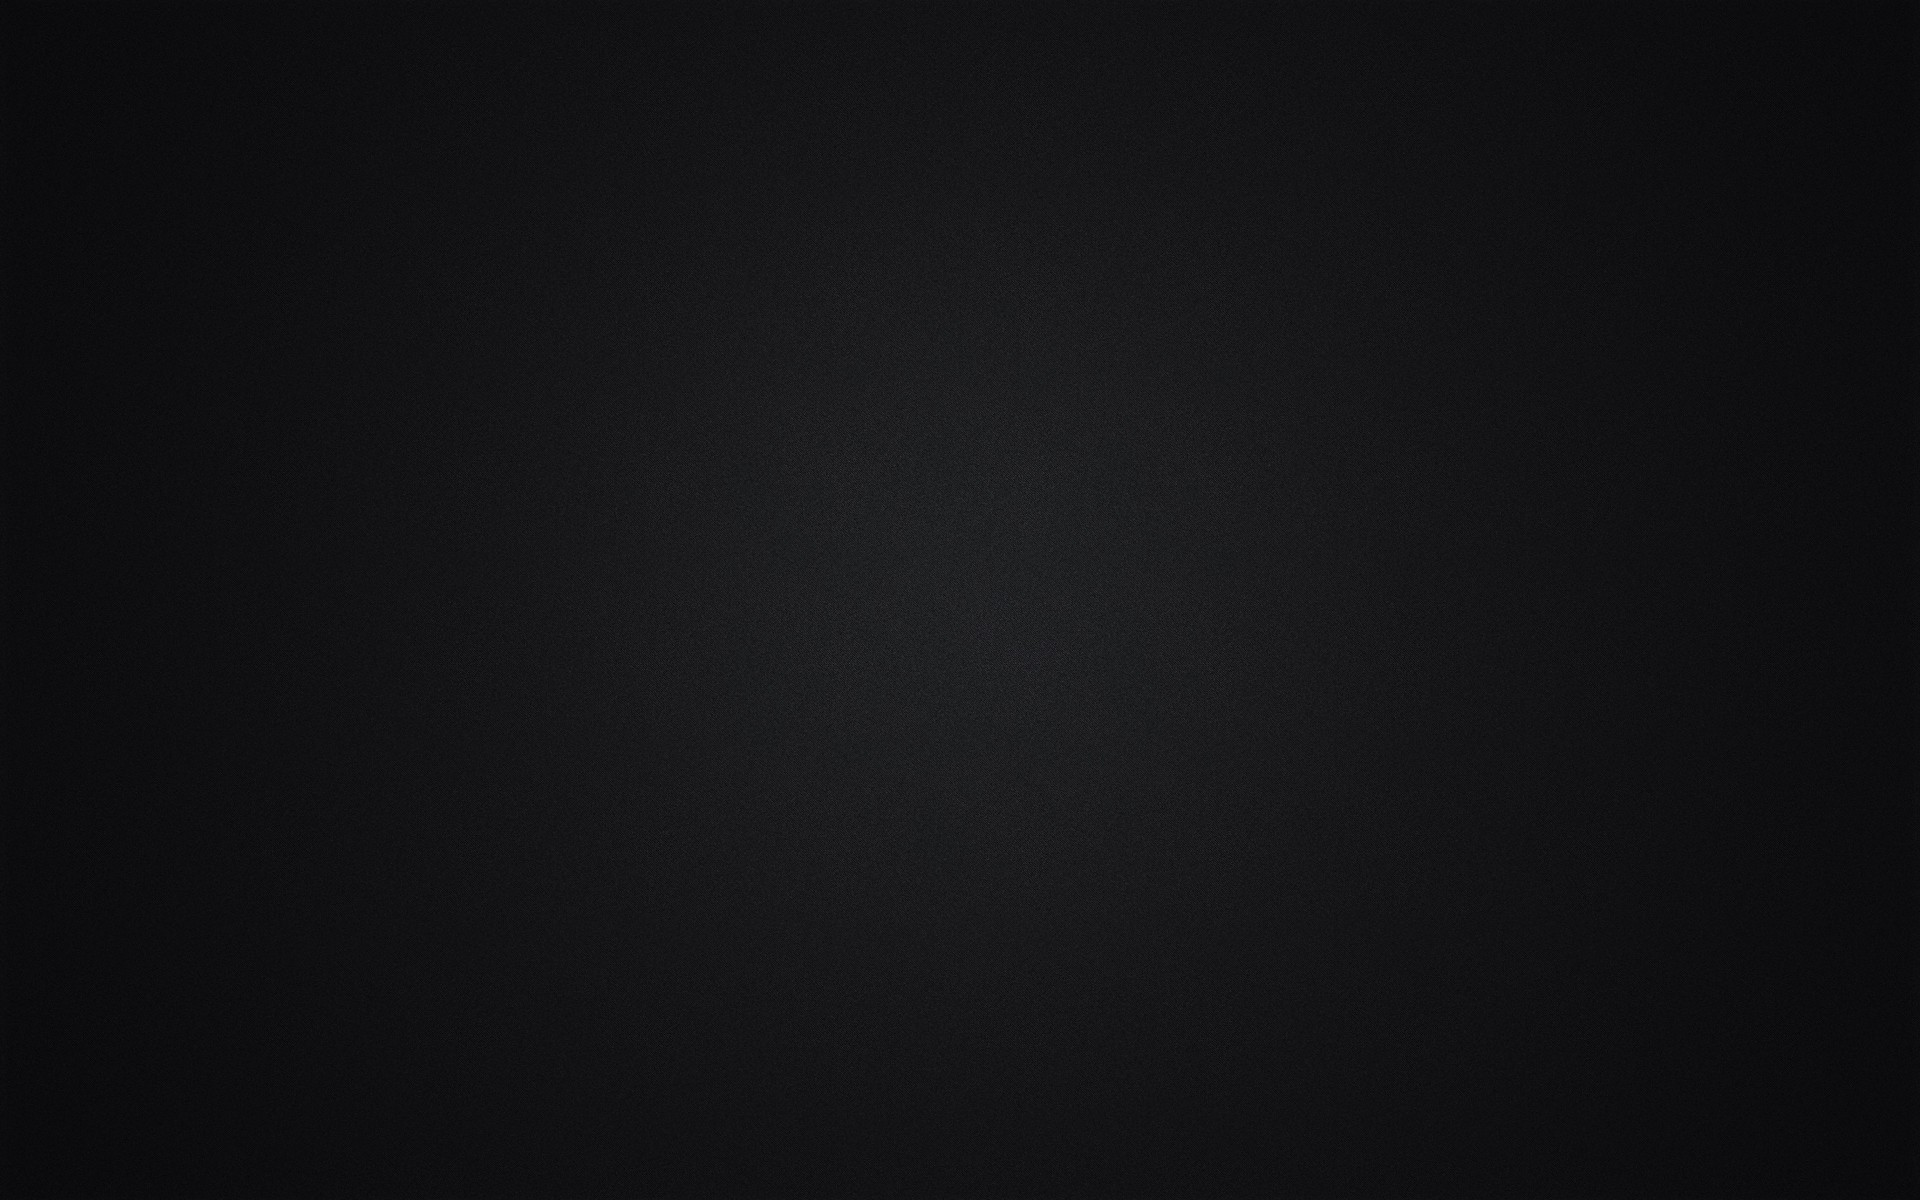 50 Black Steel Wallpaper On Wallpapersafari